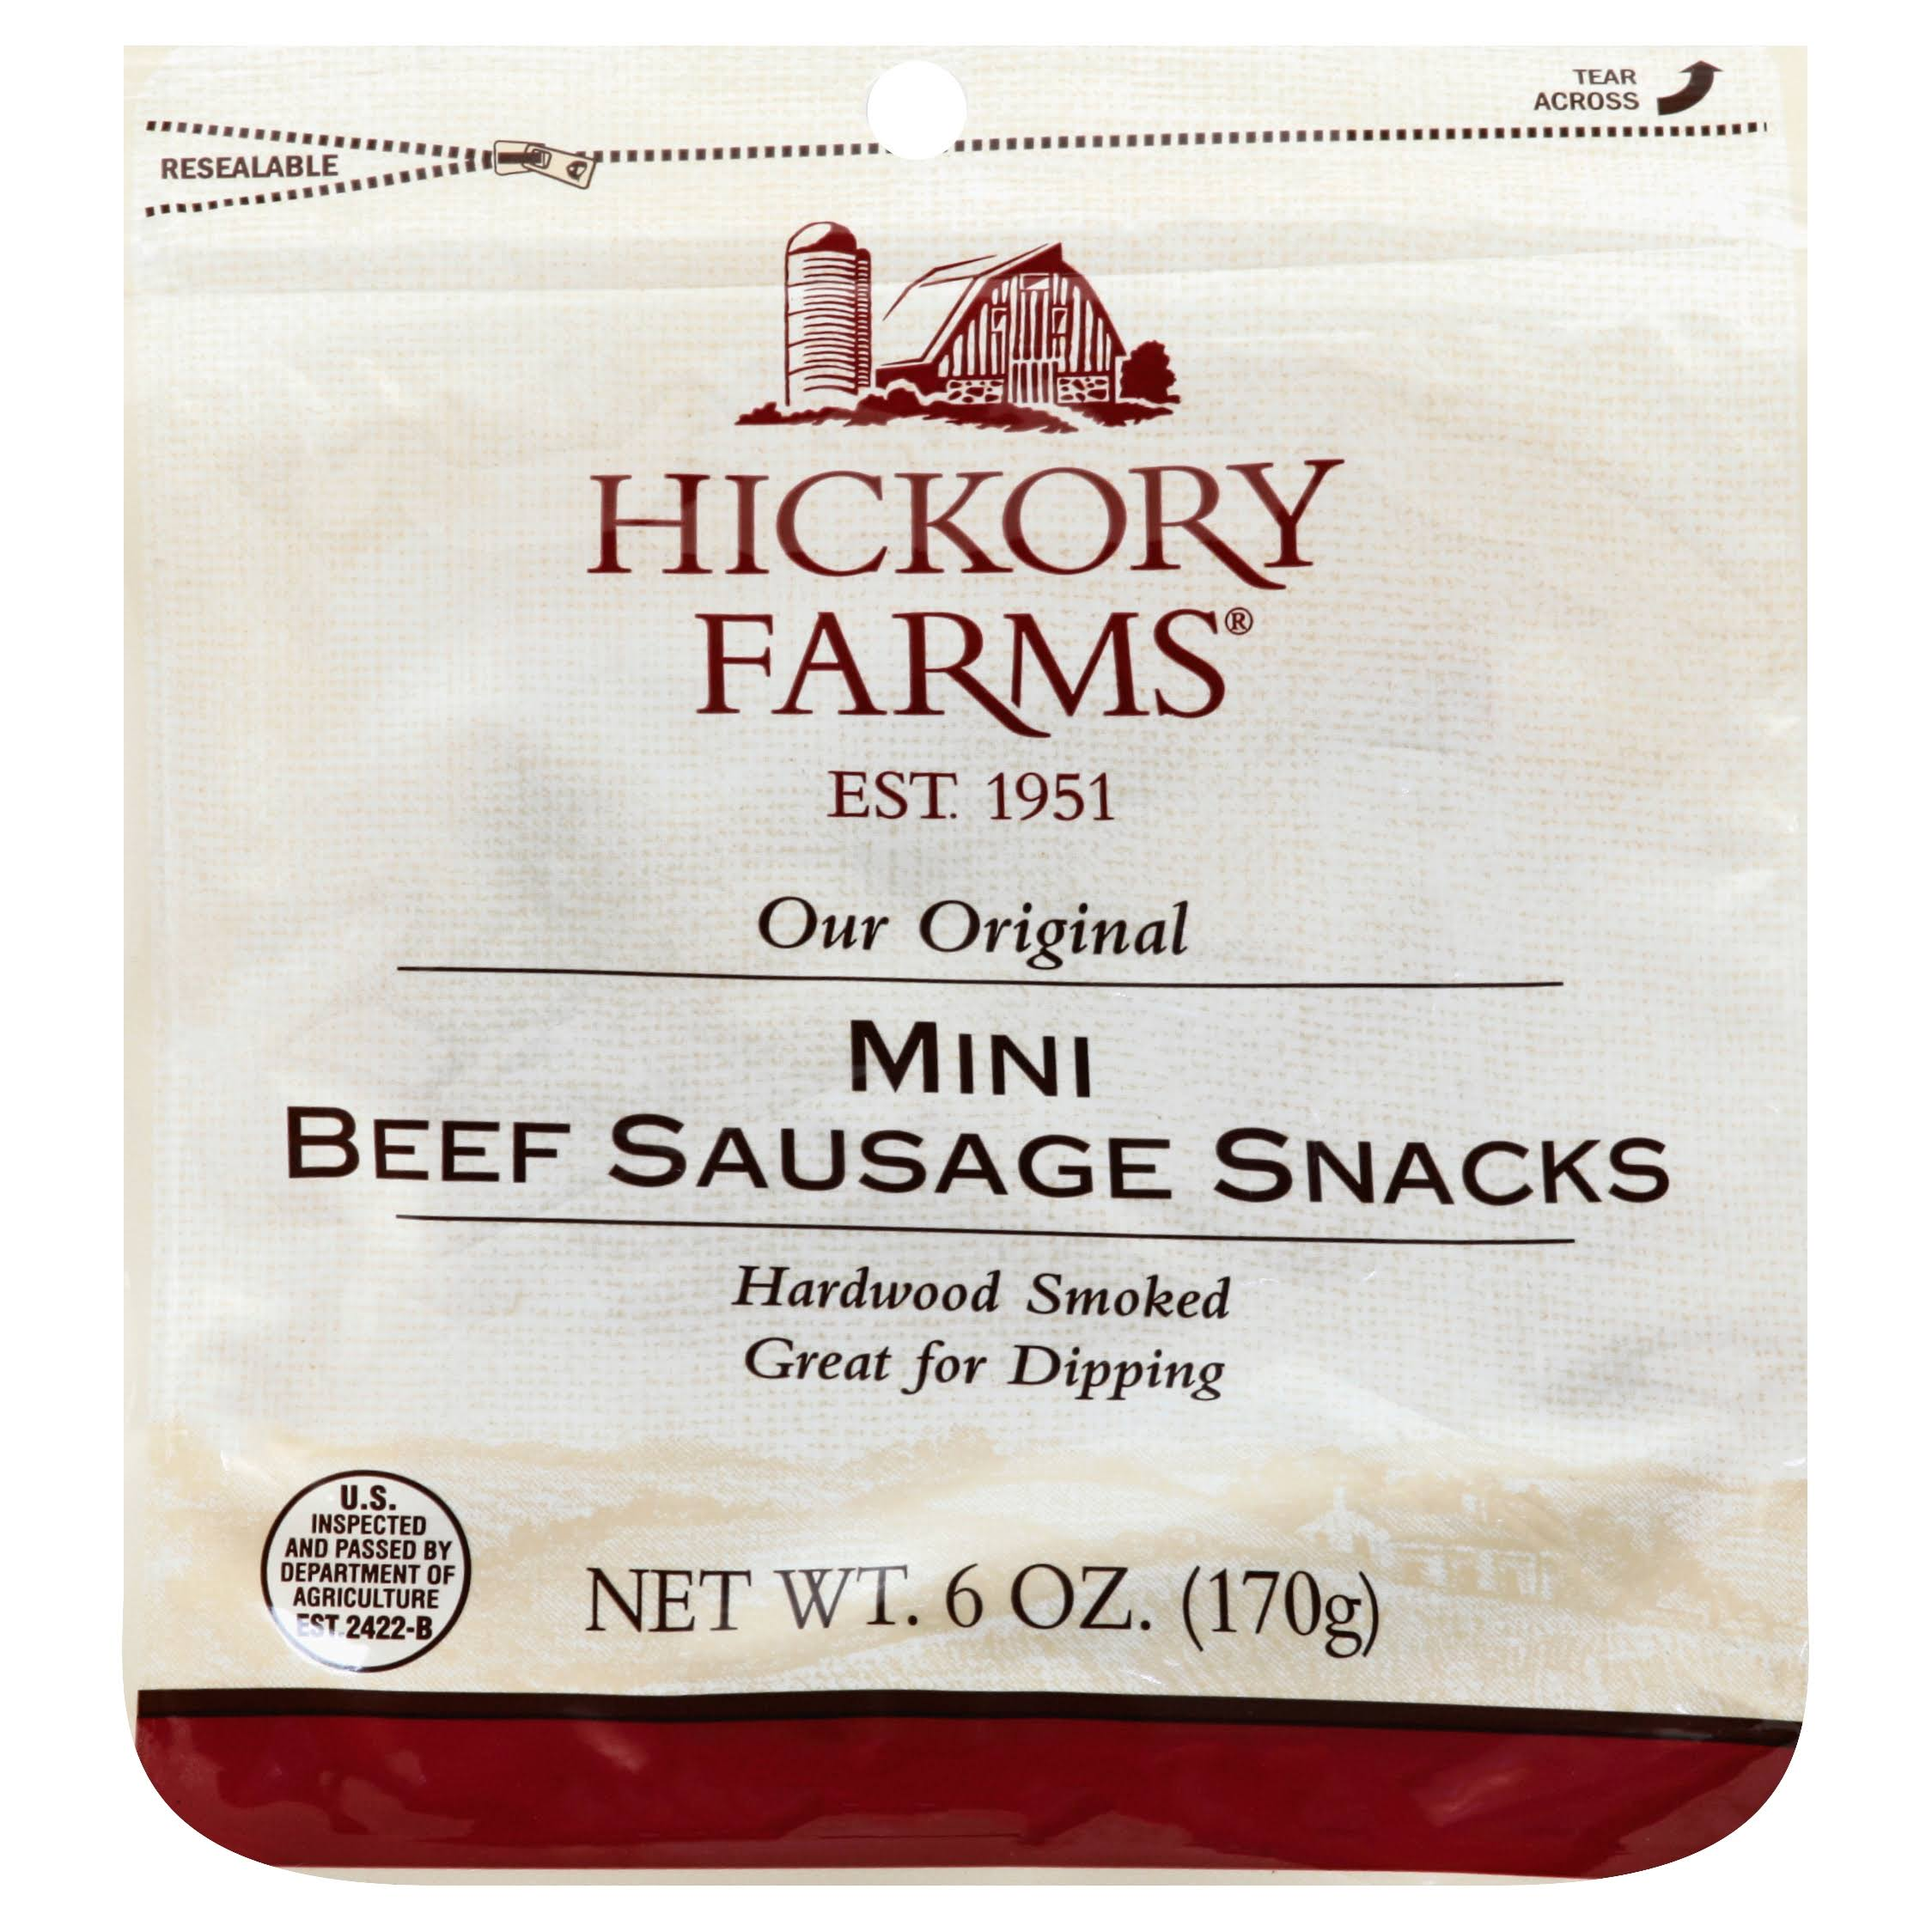 Hickory Farms Sausage Snacks, Beef, Mini - 6 oz